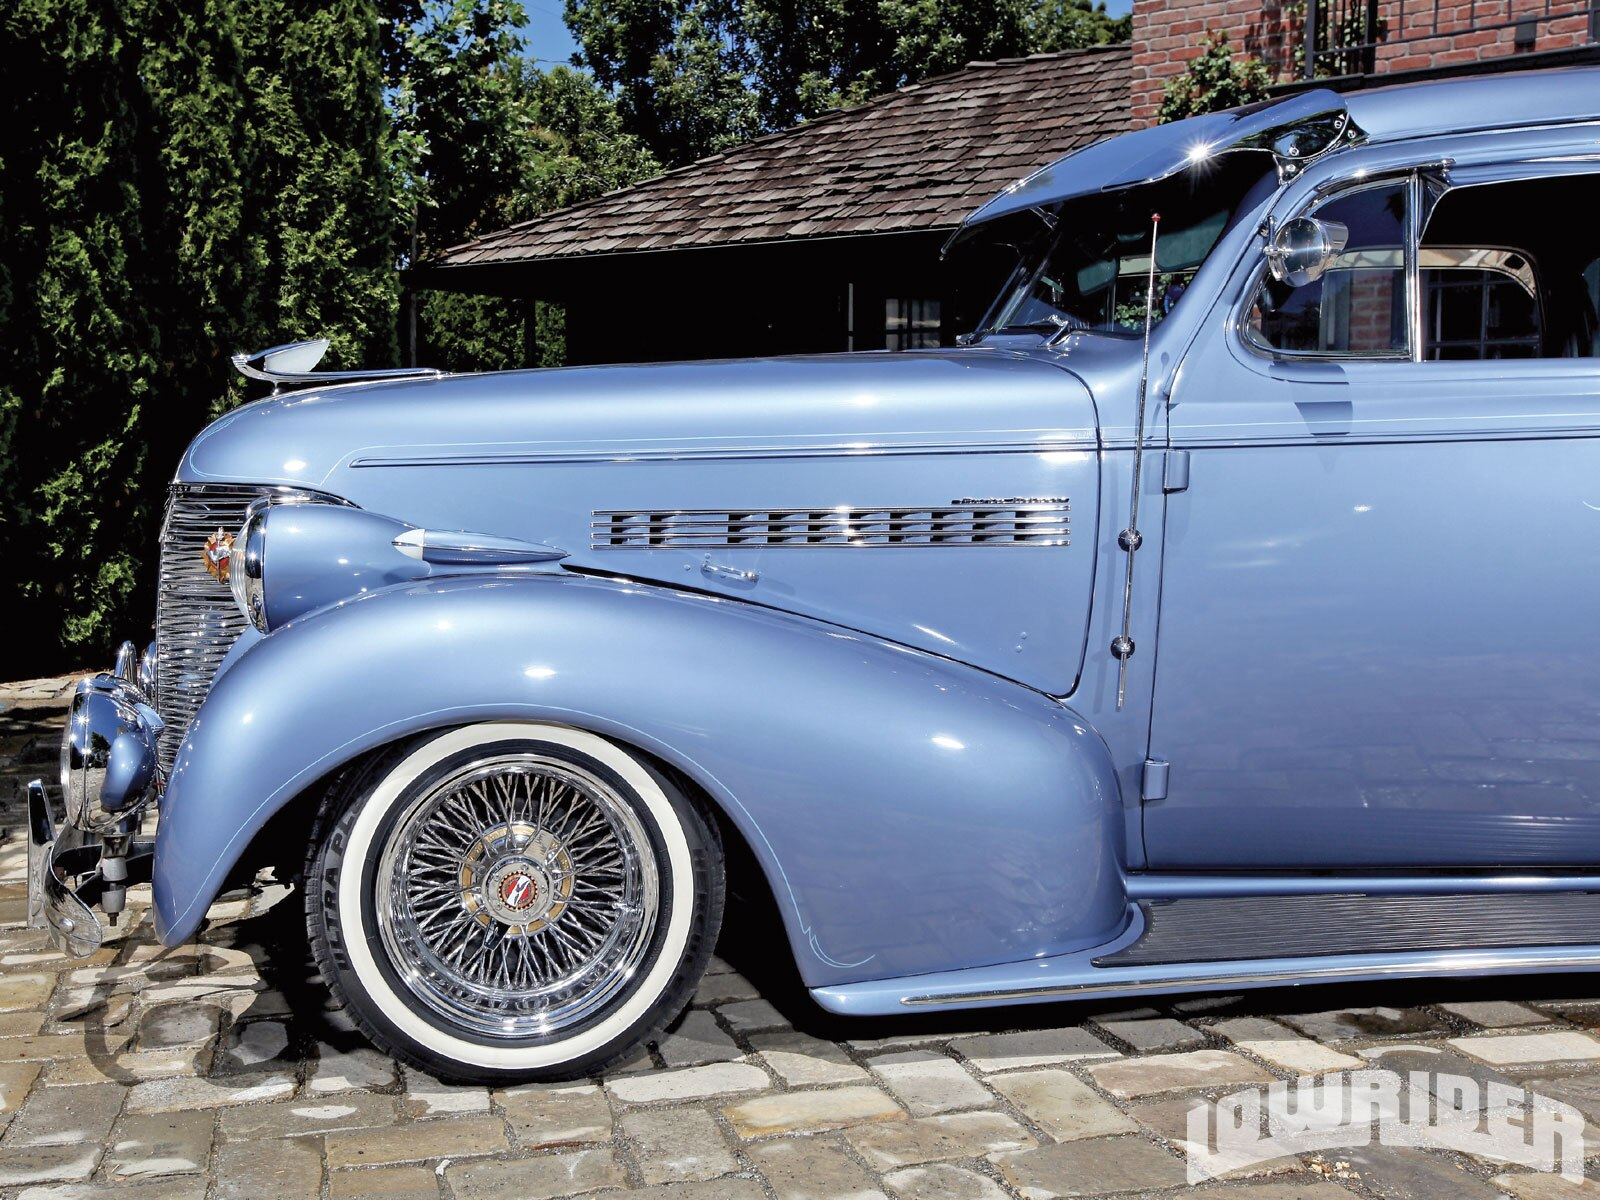 1939 Chevy Master Deluxe Lowrider Magazine View Image